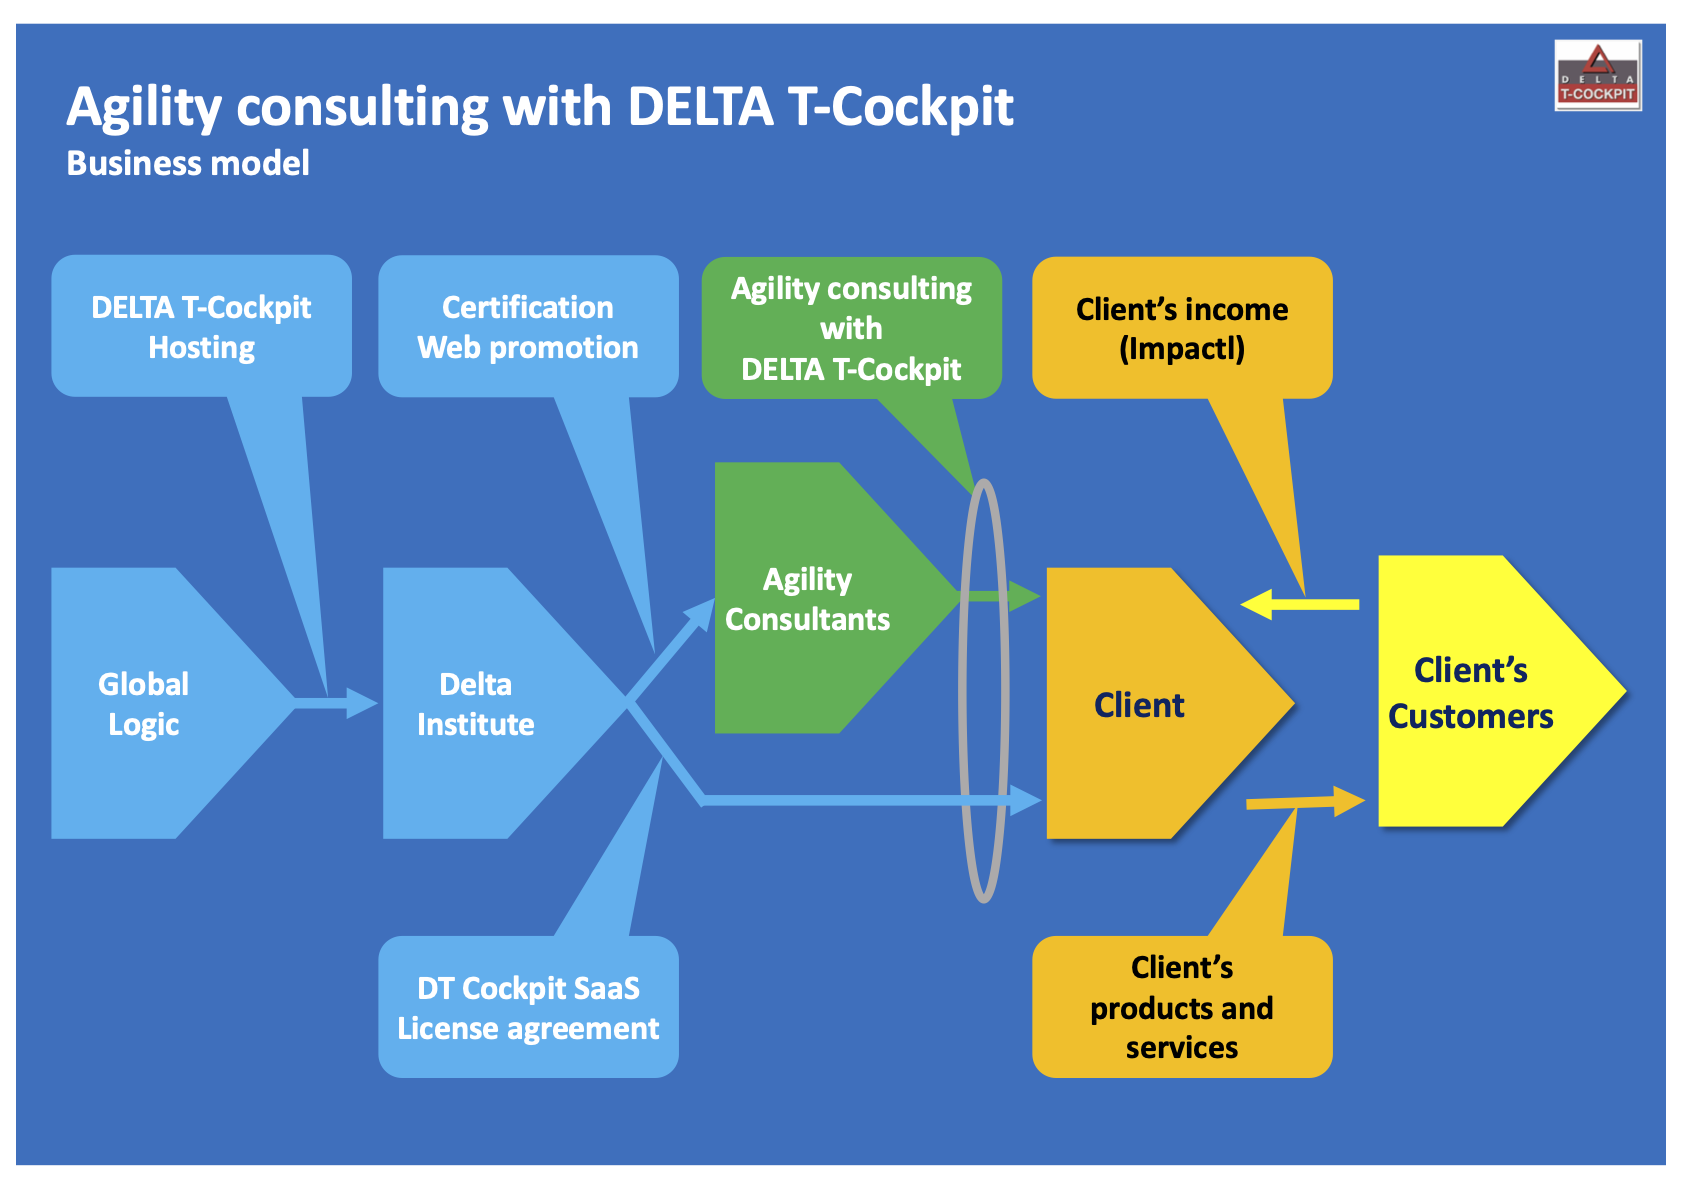 Agility consulting with DELTA T-Cockpit business model